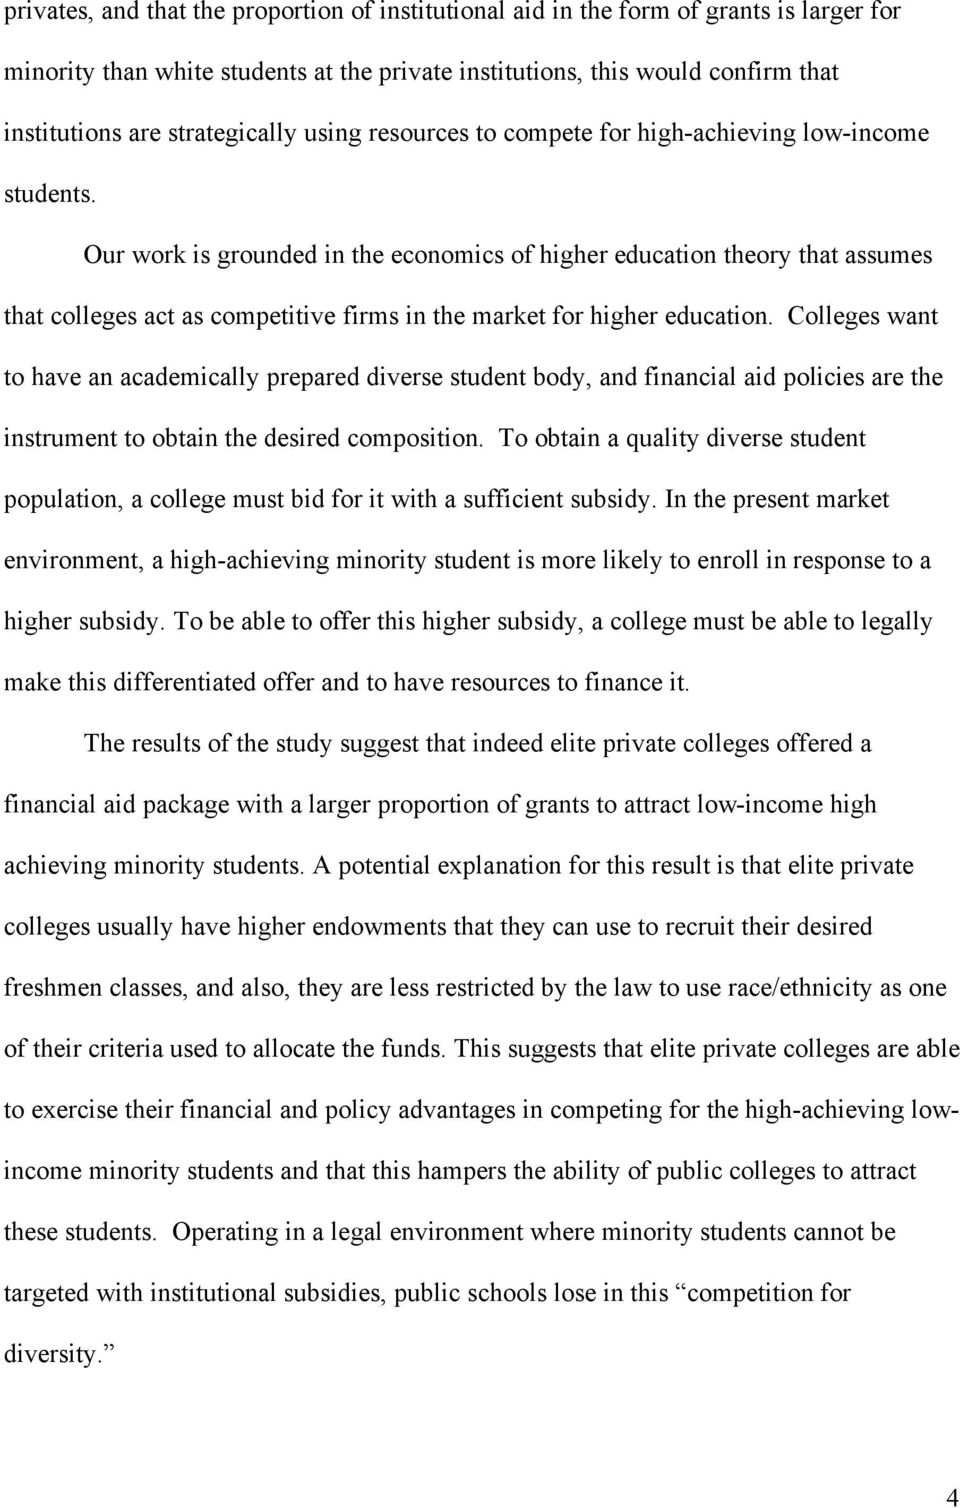 Our work is grounded in the economics of higher education theory that assumes that colleges act as competitive firms in the market for higher education.